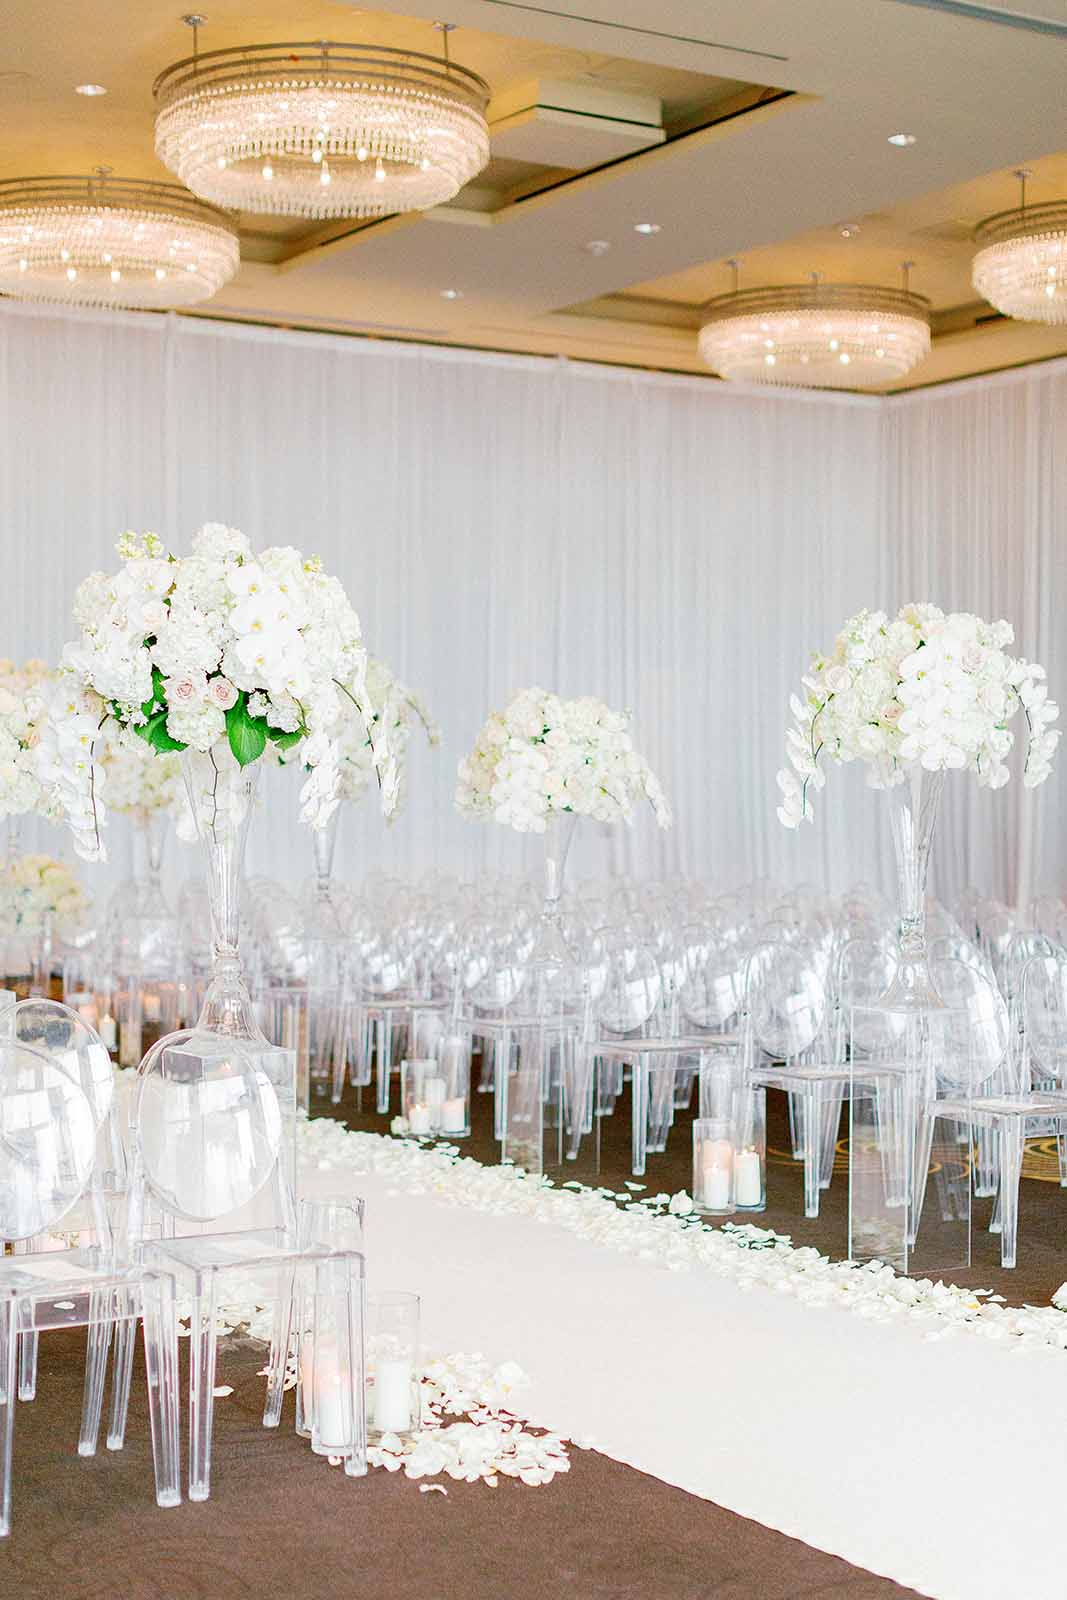 Ballroom wedding ceremony with all white floral arrangements lining the aisle of lucite ghost chairs